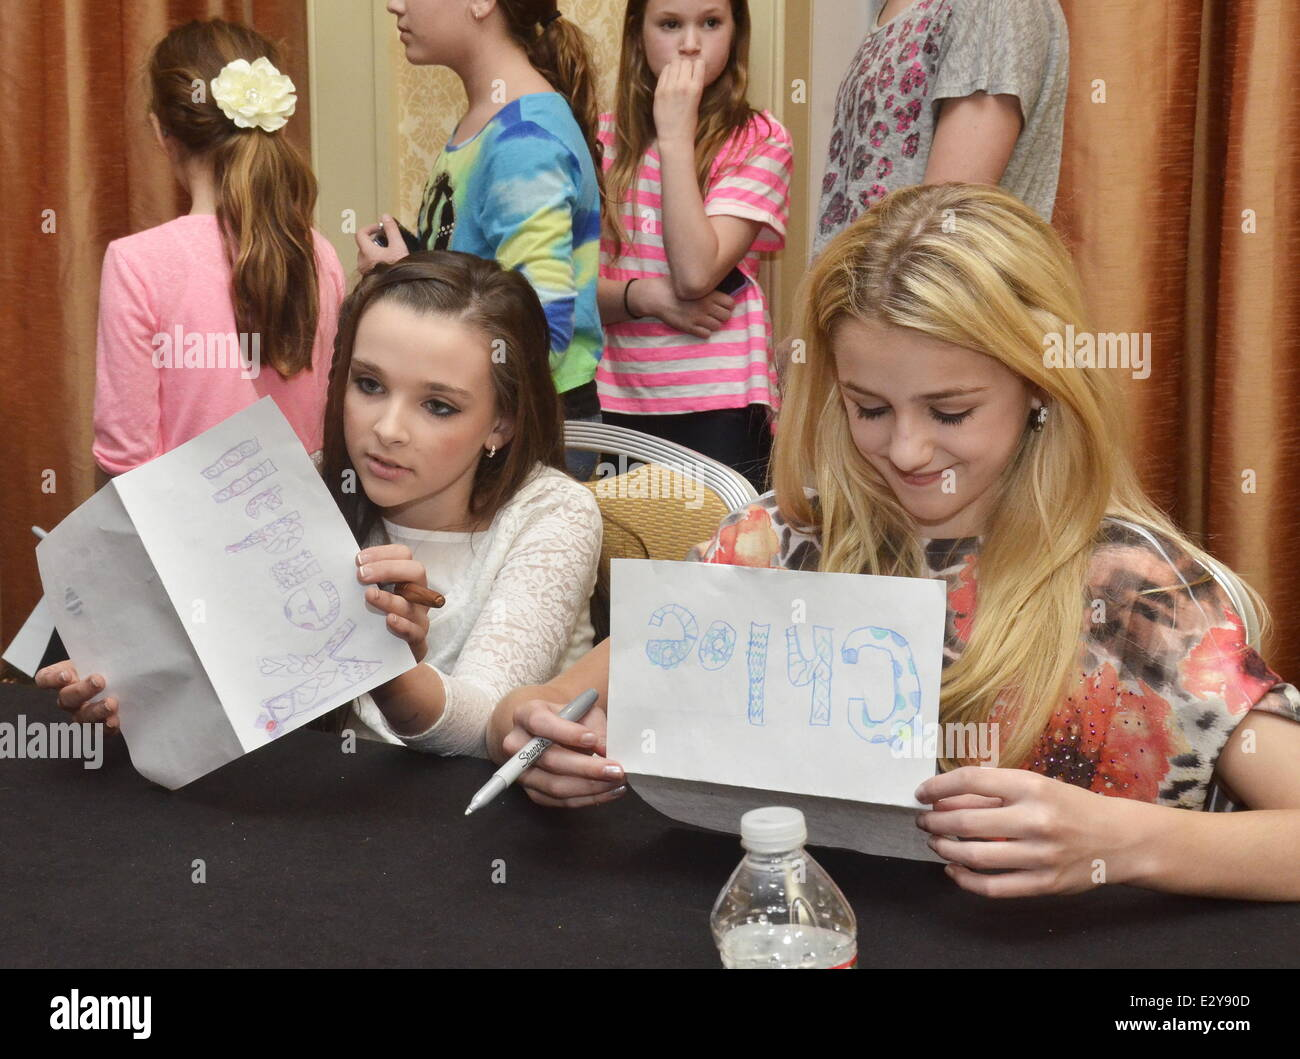 Cast members of the reality show dance moms attend a meet and cast members of the reality show dance moms attend a meet and greet at marriott downtown featuring kendall lukasiakchloe lukasiak where philadelphia m4hsunfo